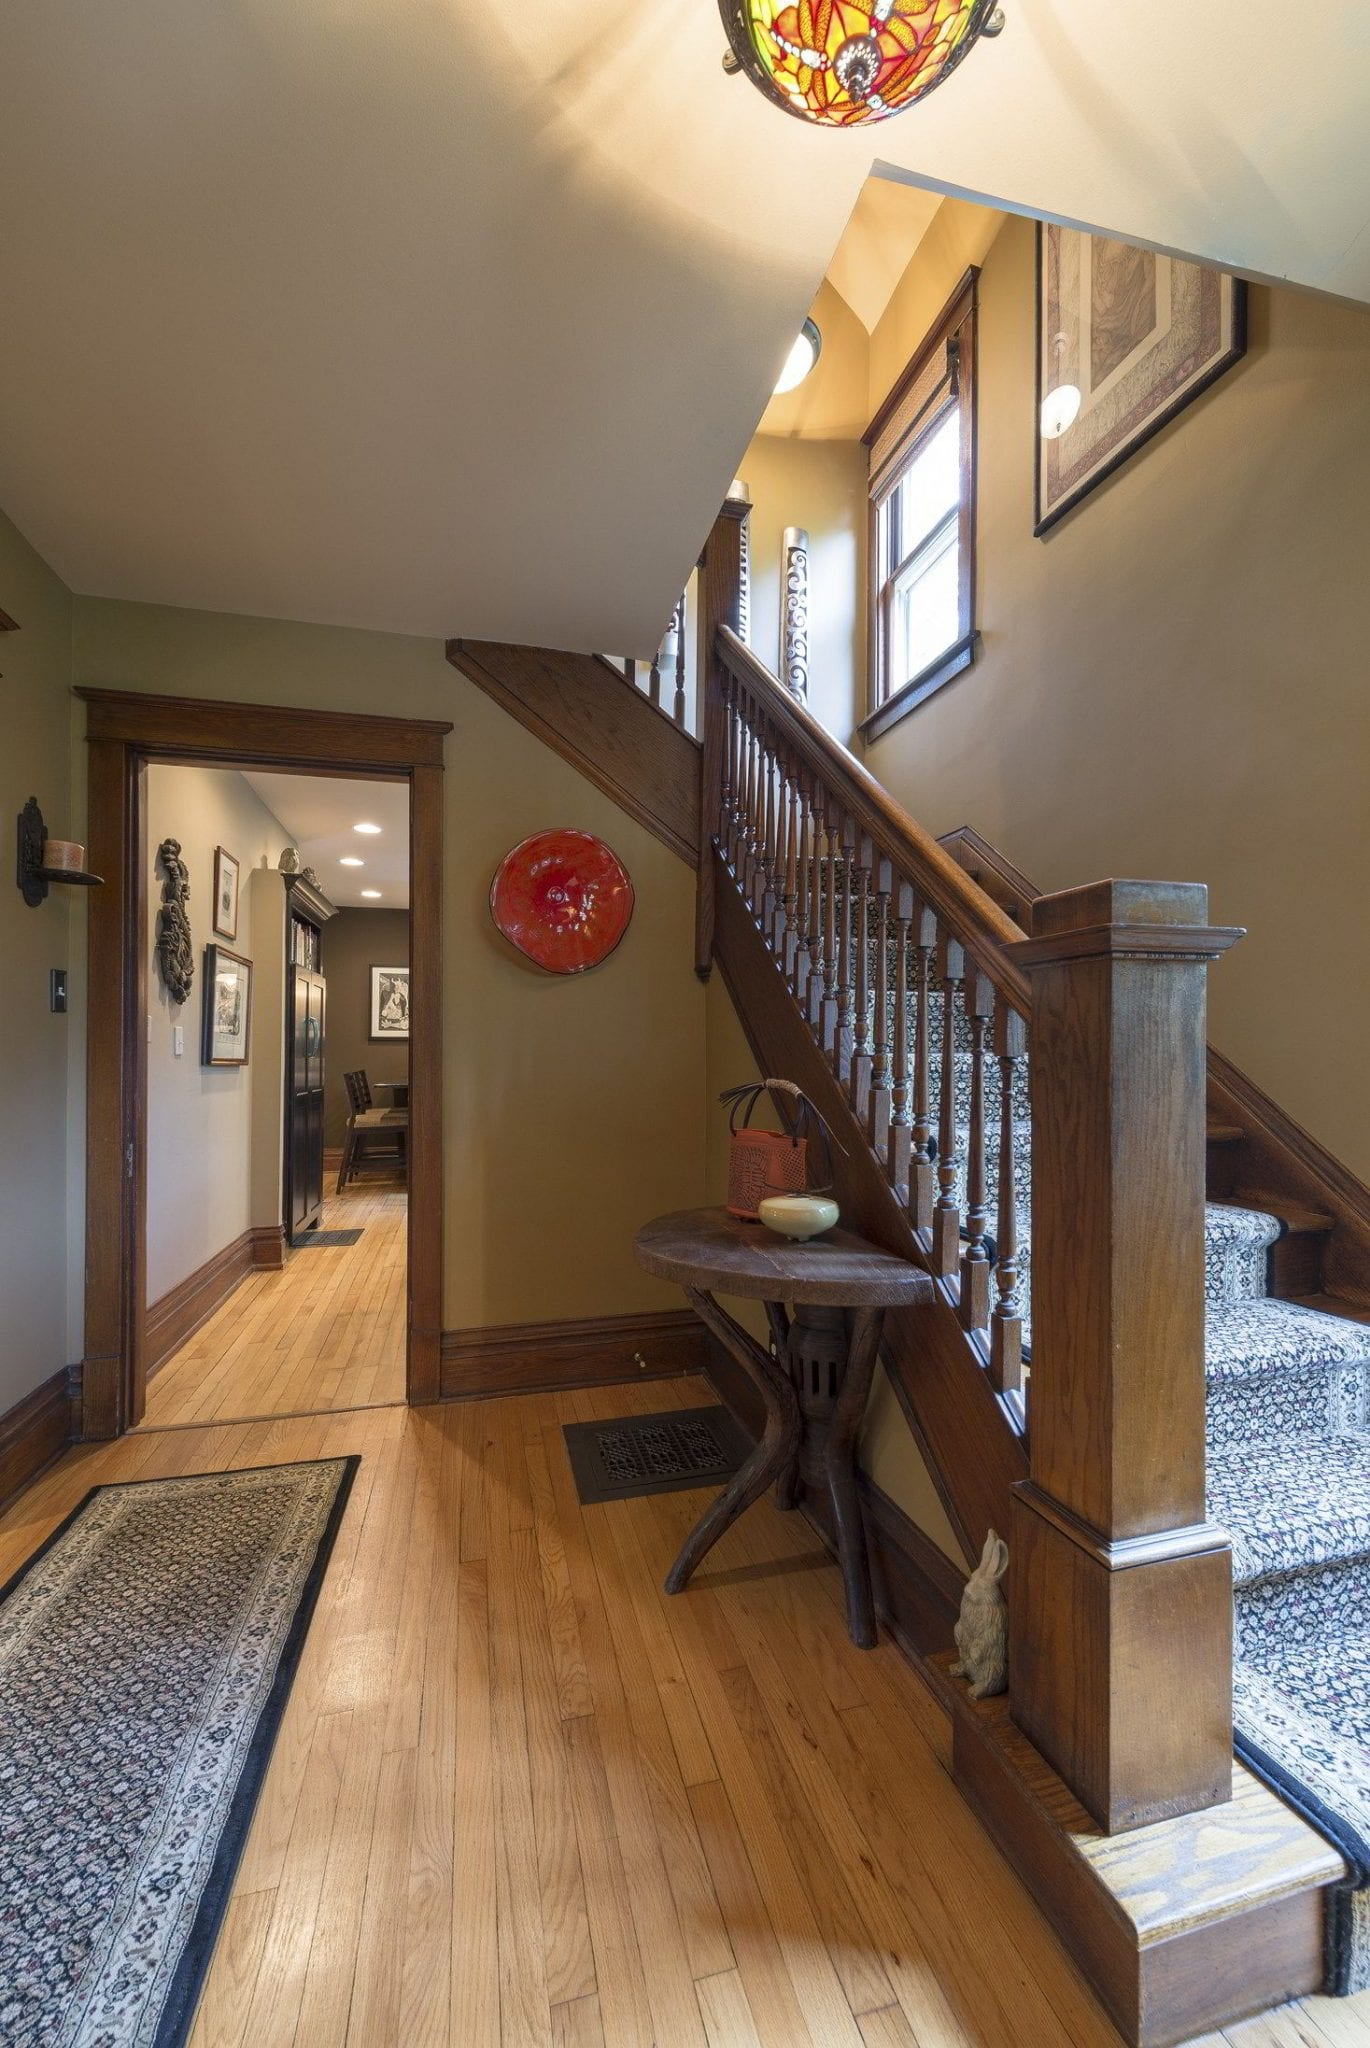 DF Design, Inc | Interior Designer | Craftsman style home foyer entrance